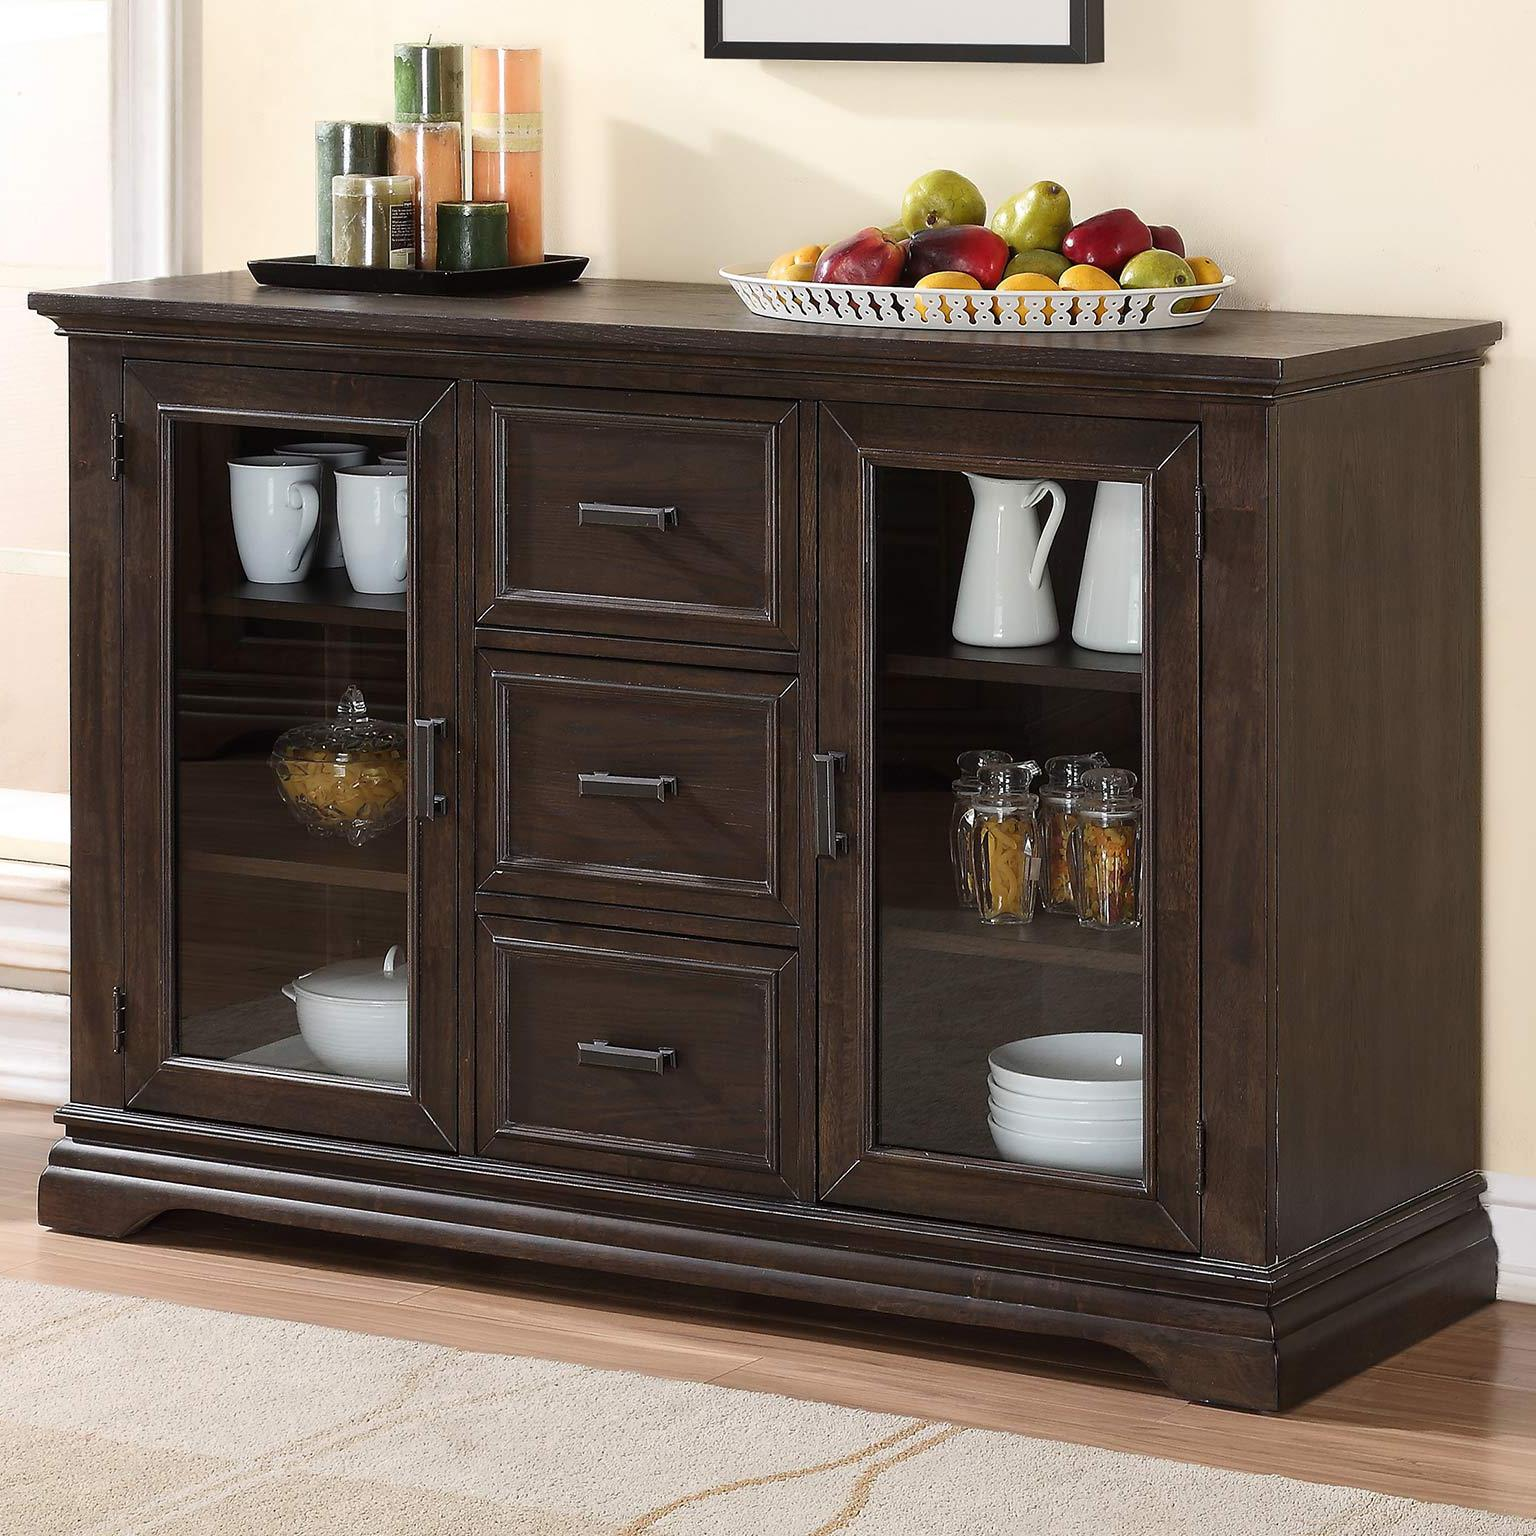 Winners Only Xcalibur Dx1470bx Sideboard With 2 Glass. Sliding Doors For Sale. Cabinet Door Catches. Hamilton Garage Doors. Garage Closet Plans. Stick Built Garage Packages. Maine Garage Builders. Garage Doors Lancaster Ca. Garage Packages Nc